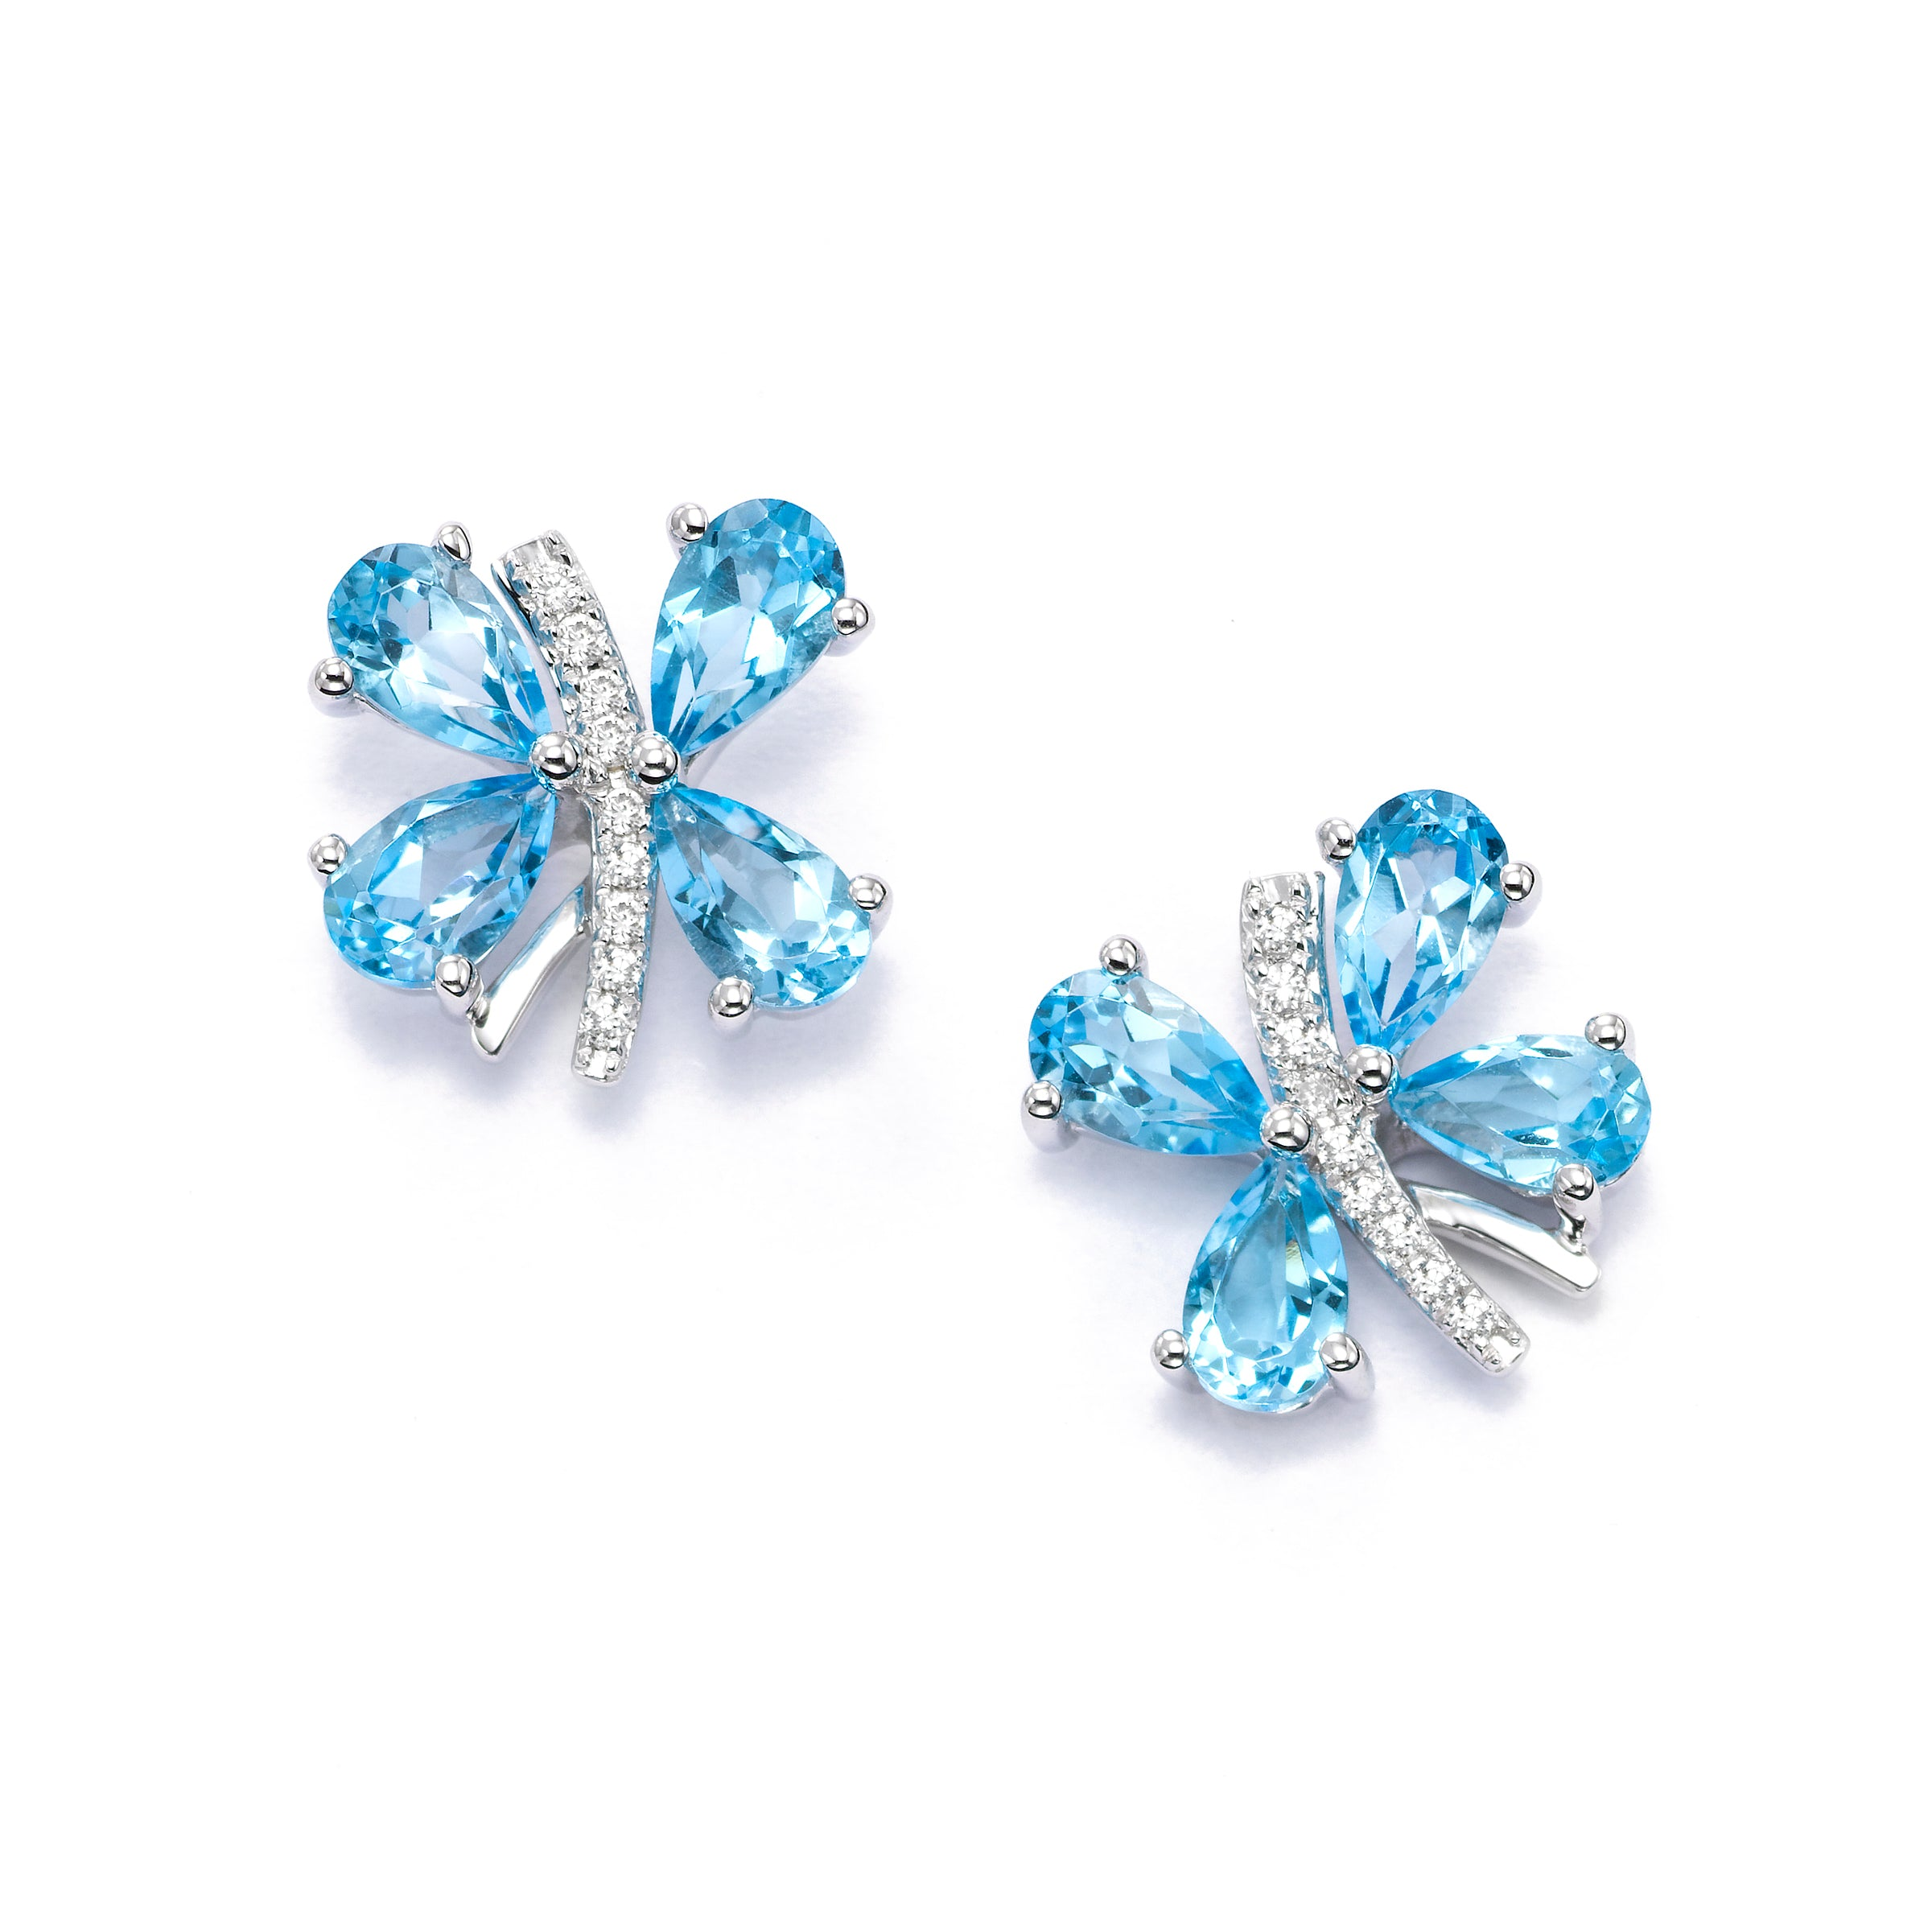 Butterfly Earrings with Blue Topaz and Diamonds, 14K White Gold